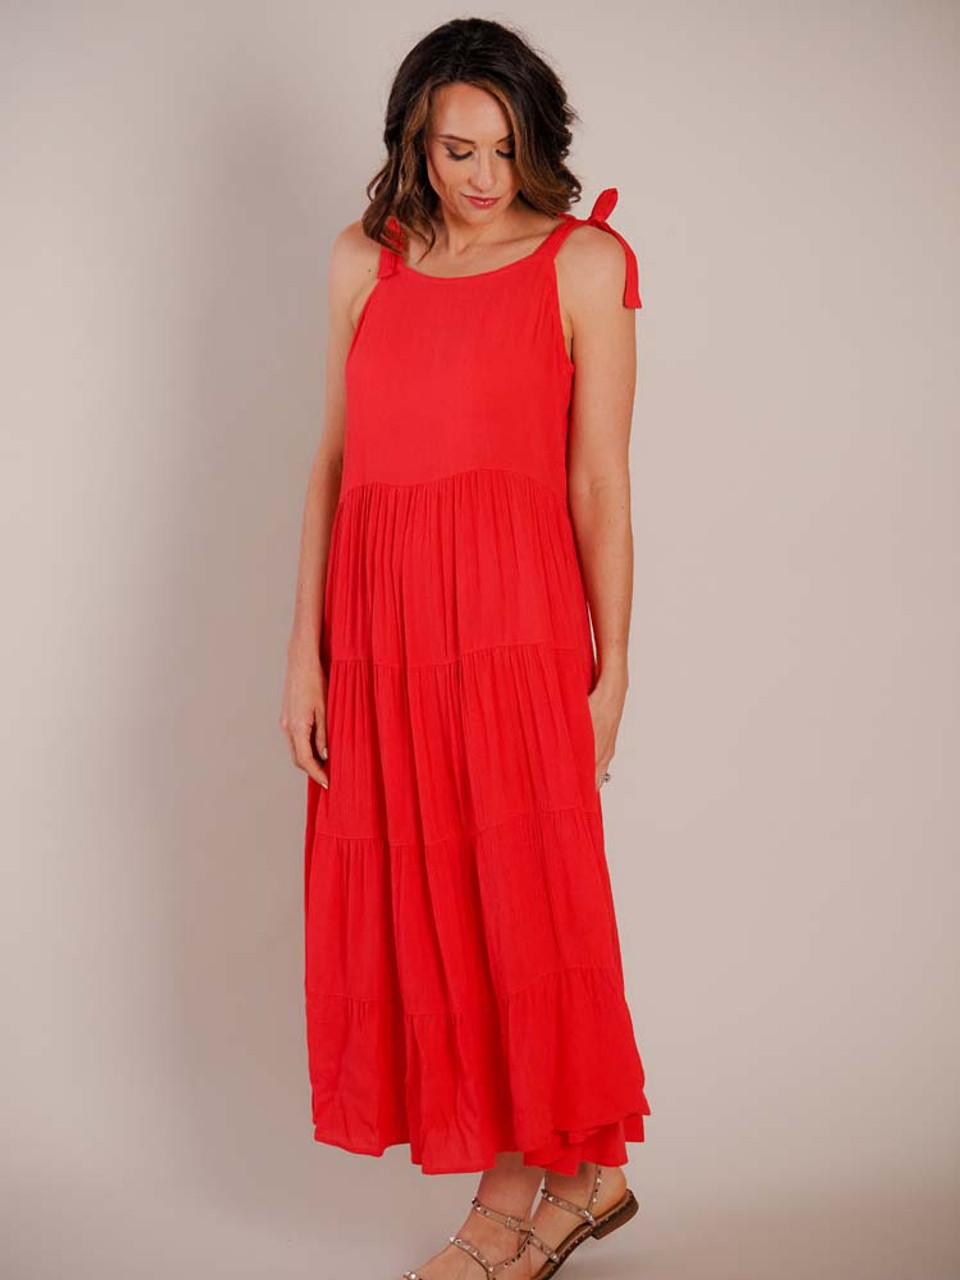 This beautiful coral red summer dress has tie straps; a straight neckline; softly pleated seam at waist; three more horizontal pleated seams down skirt